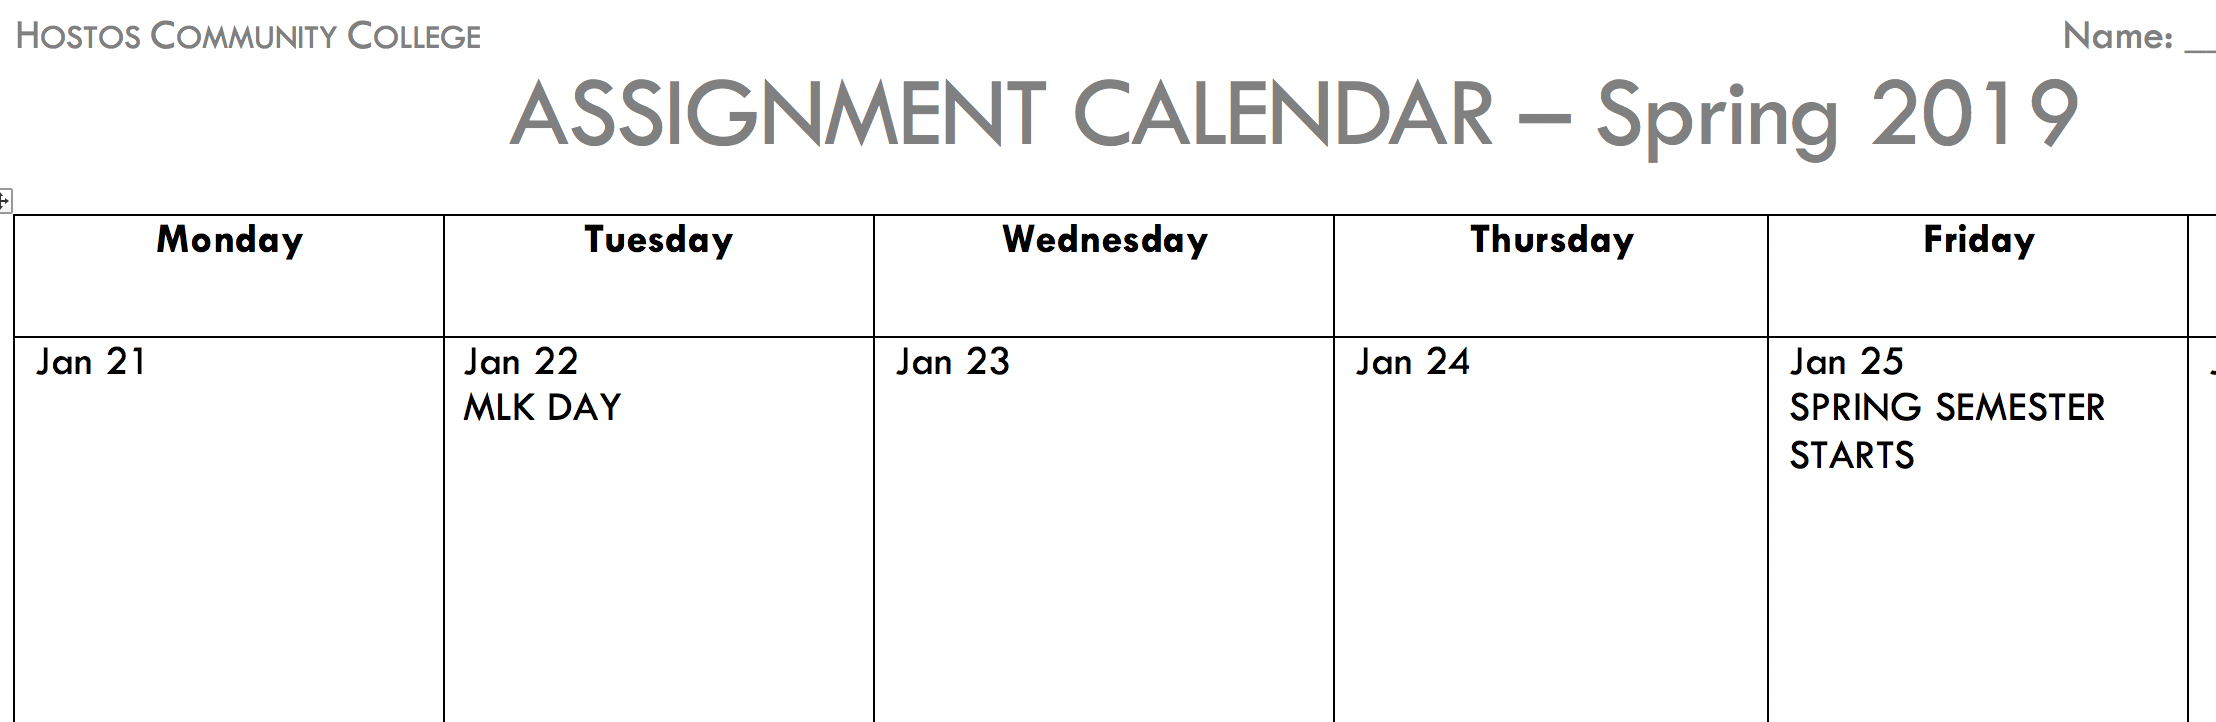 "Screenshot of calendar with heading ""Assignment Calendar-Spring 2019"" at the top and the days of the week listed below with January dates"